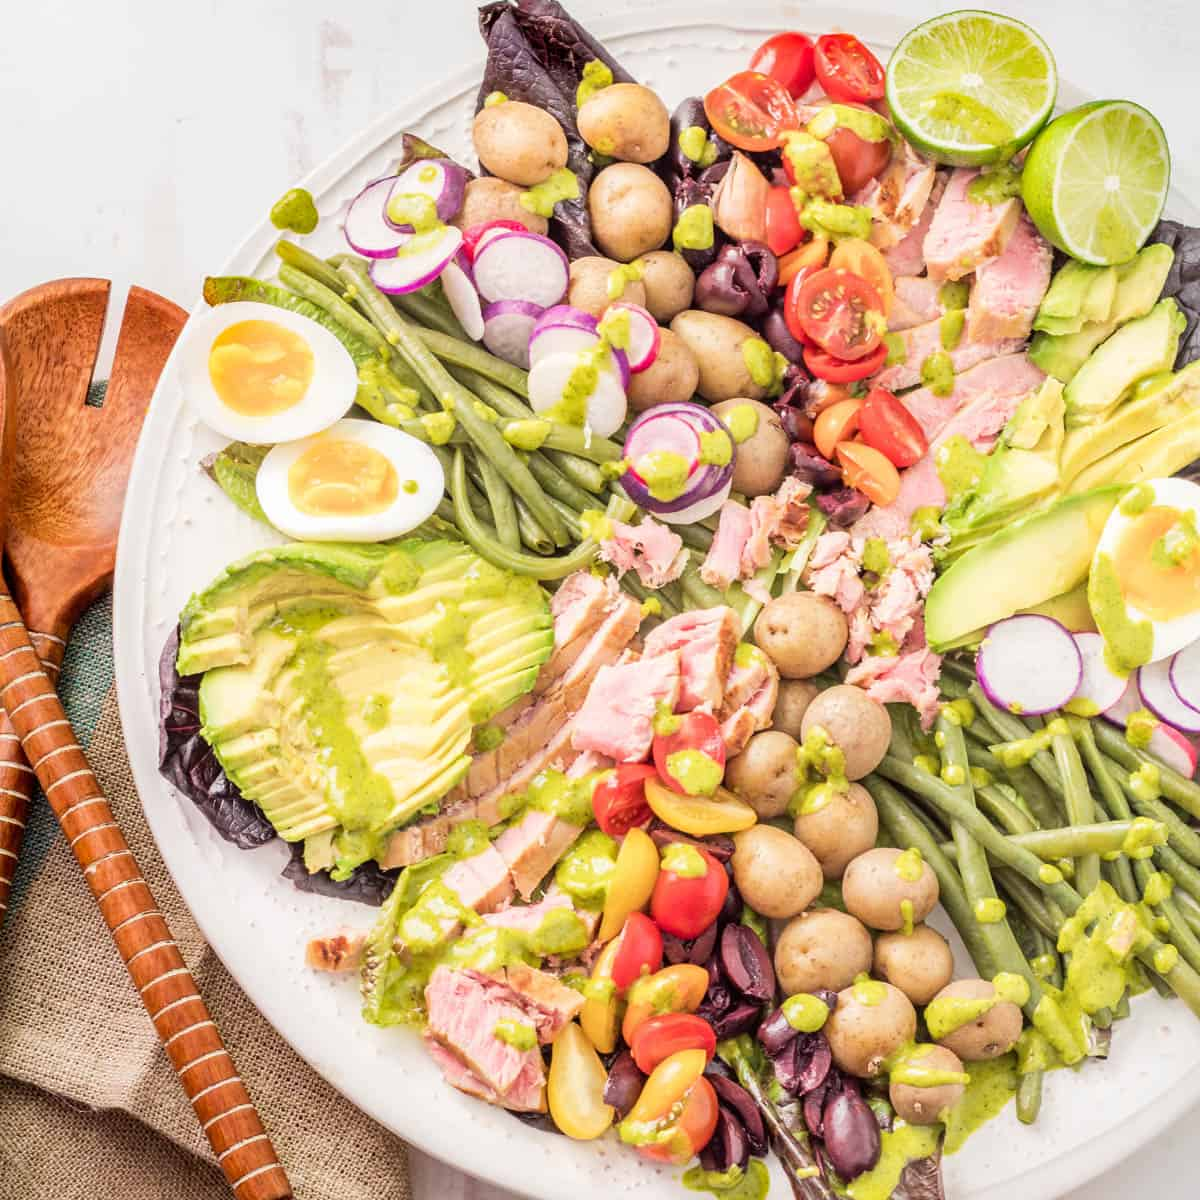 A close up of a white ceramic platter with Peruvian-inspired Nicoise Salad drizzled with the cilantro lime dressing and wood salad utensils.